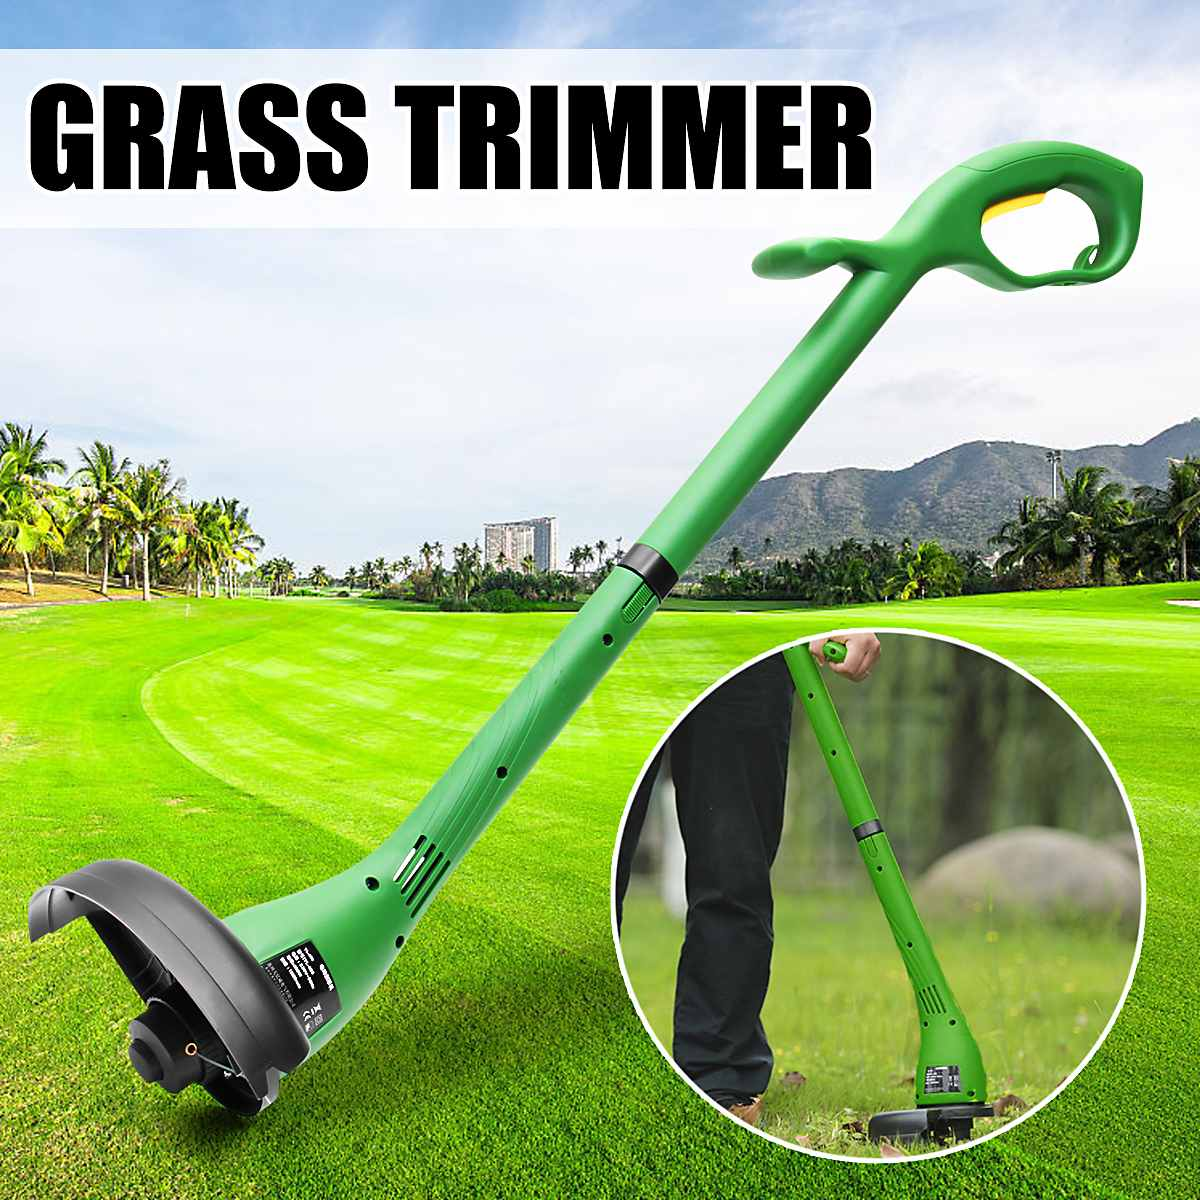 WEED TRIMMER Head Lawn Mower Sharpener WEED TRIMMER Head pour puissance tondeuse à gazon